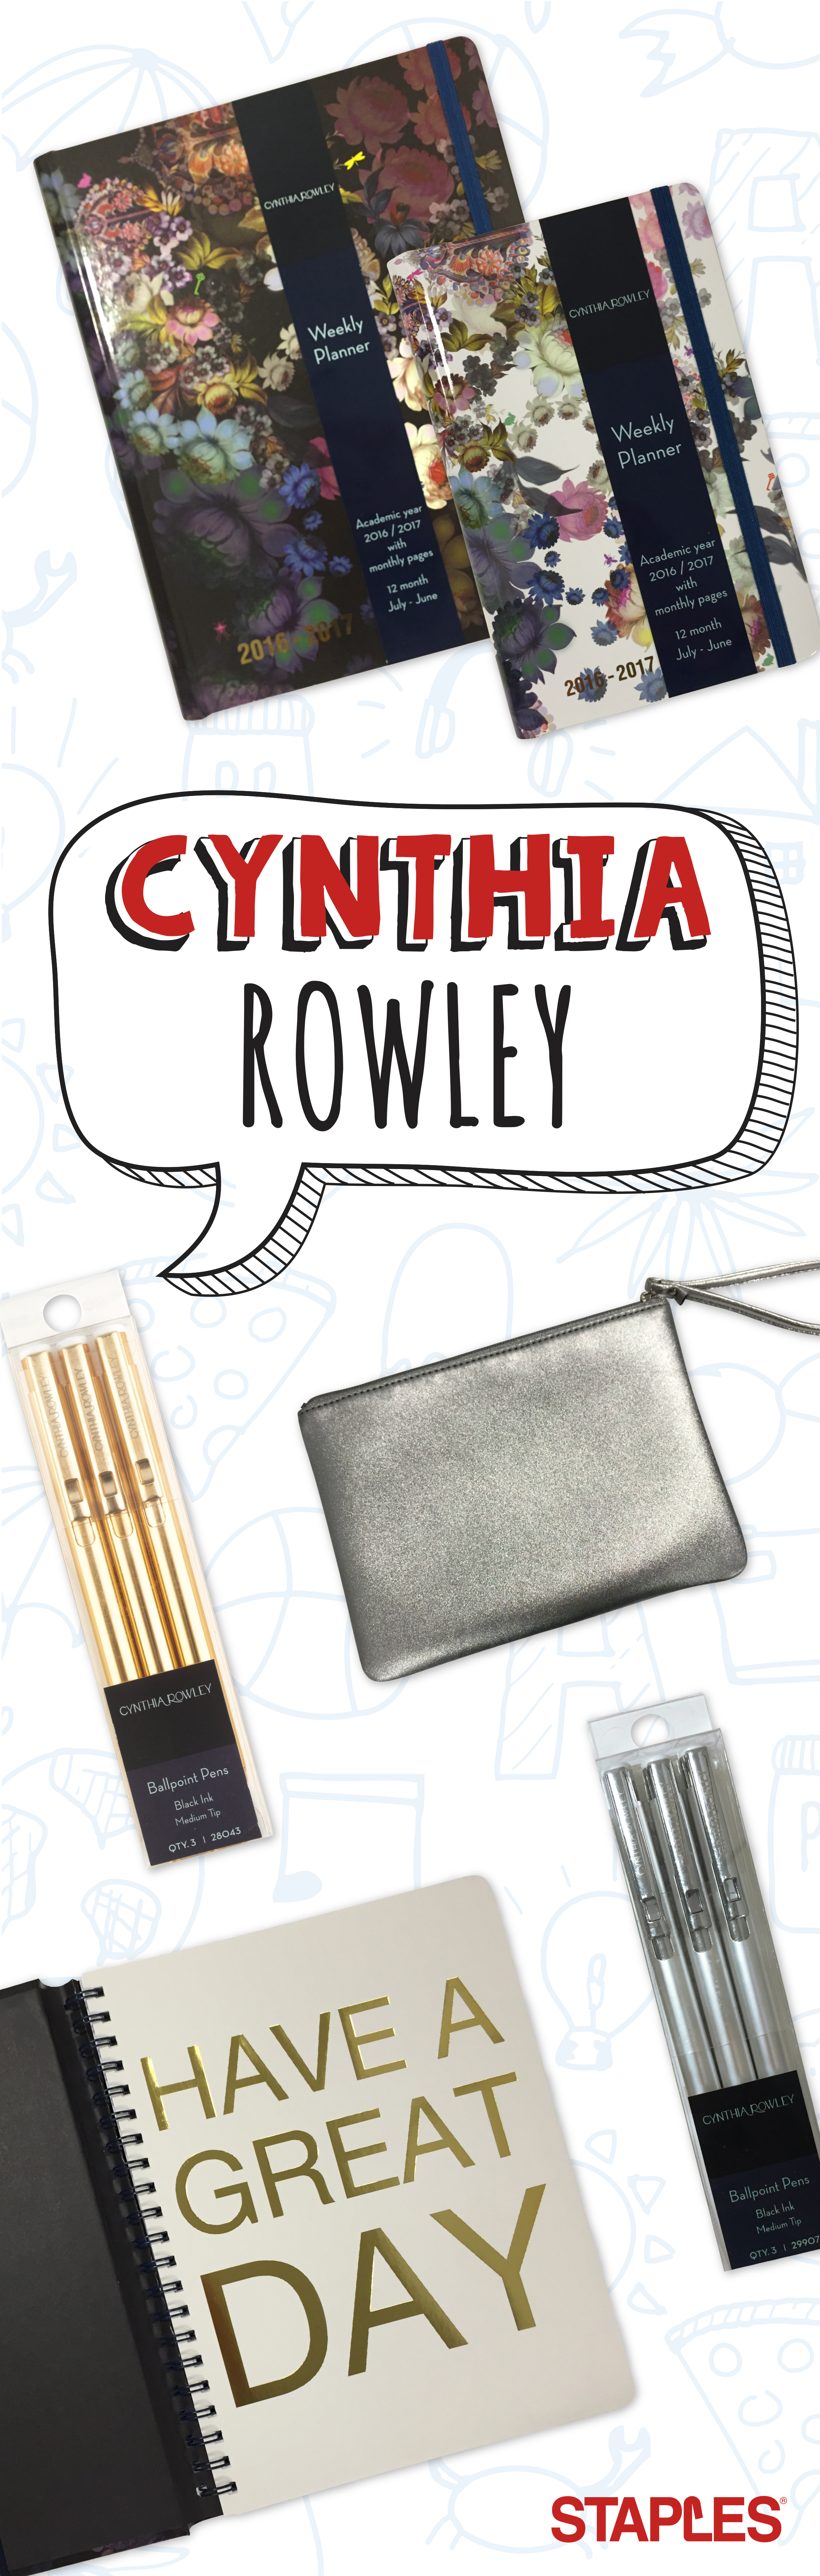 Stay Classy With The Exclusive Cynthia Rowley Collection From